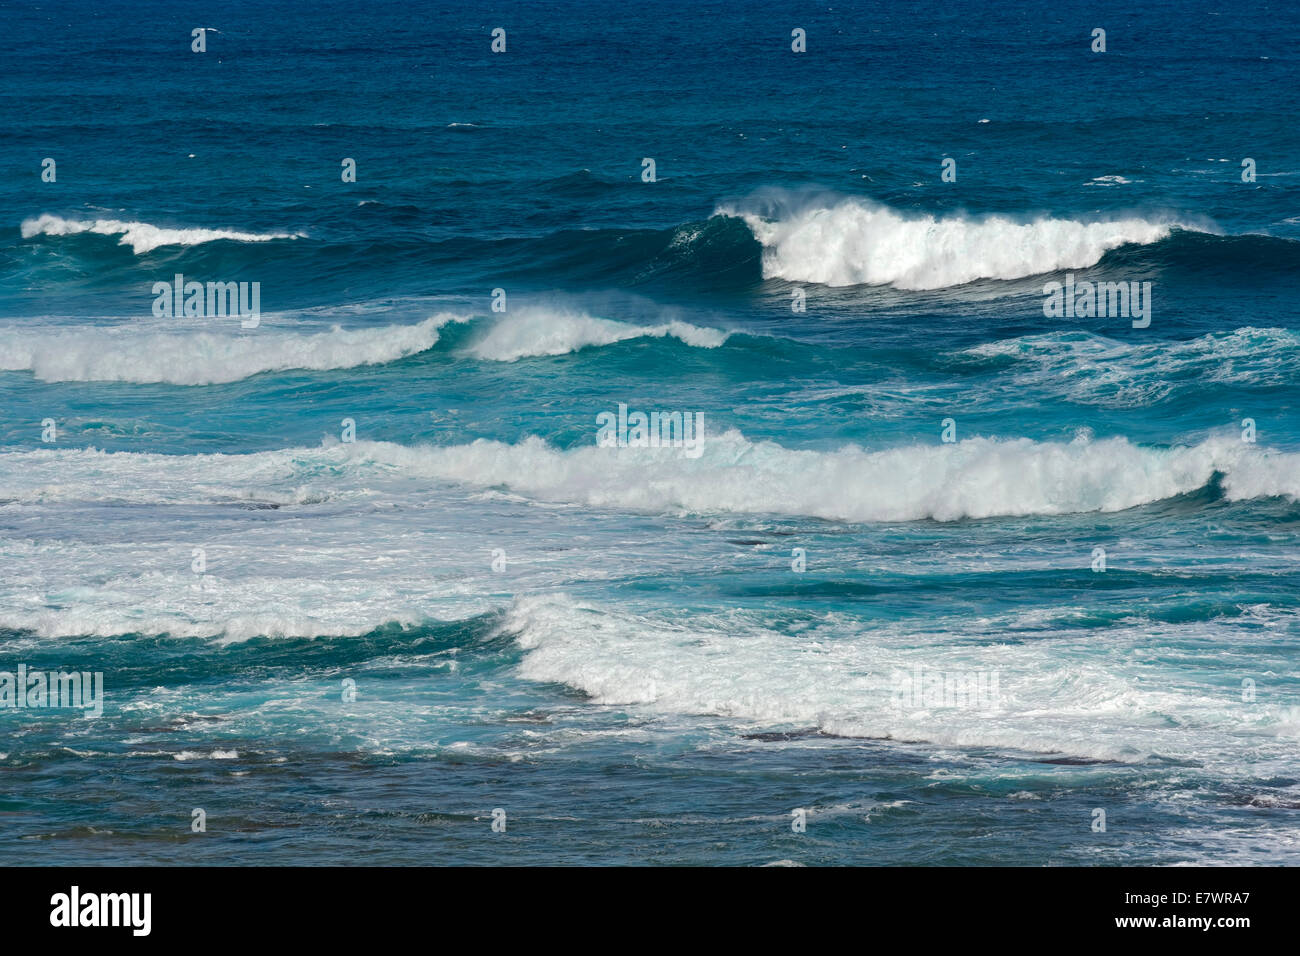 Crashing waves in the Pacific Ocean, Kaua'i, Hawaii, United States - Stock Image